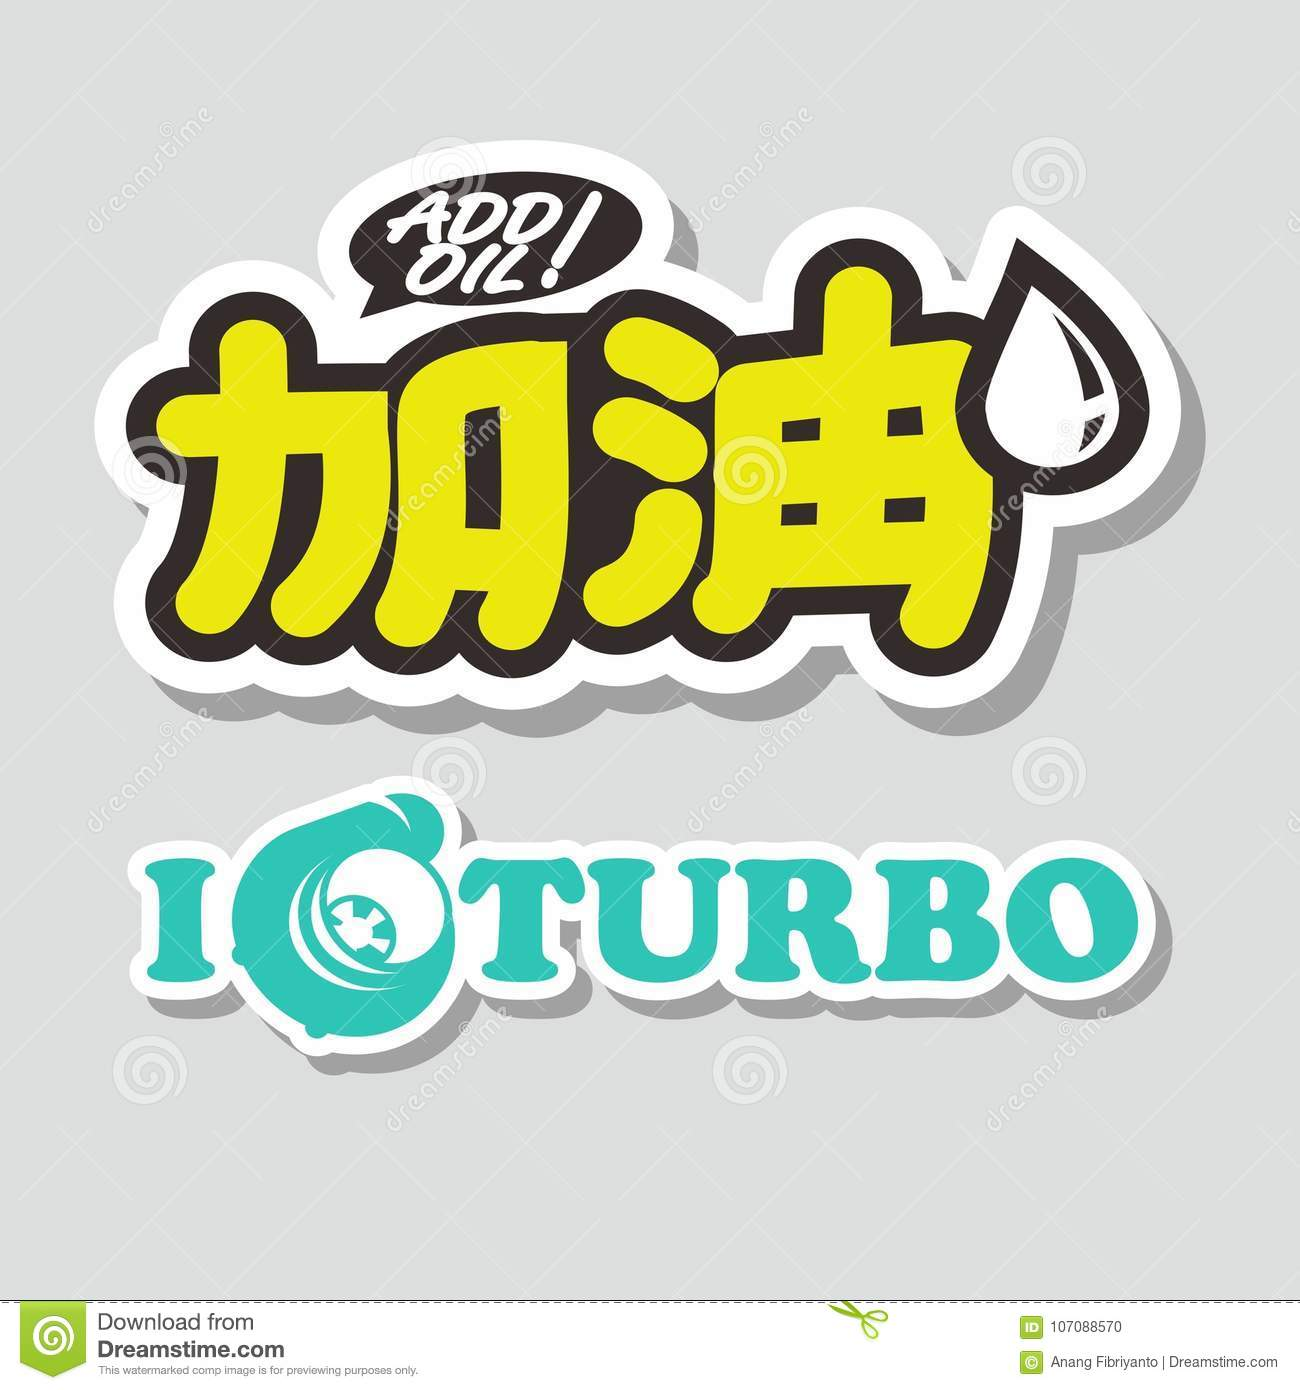 0982c3b22 ... decal designs for Asian and japanese cars culture. Royalty-Free Vector.  Add oil and turbo sticker set designs. Graphic design for t-shirt and  stickers